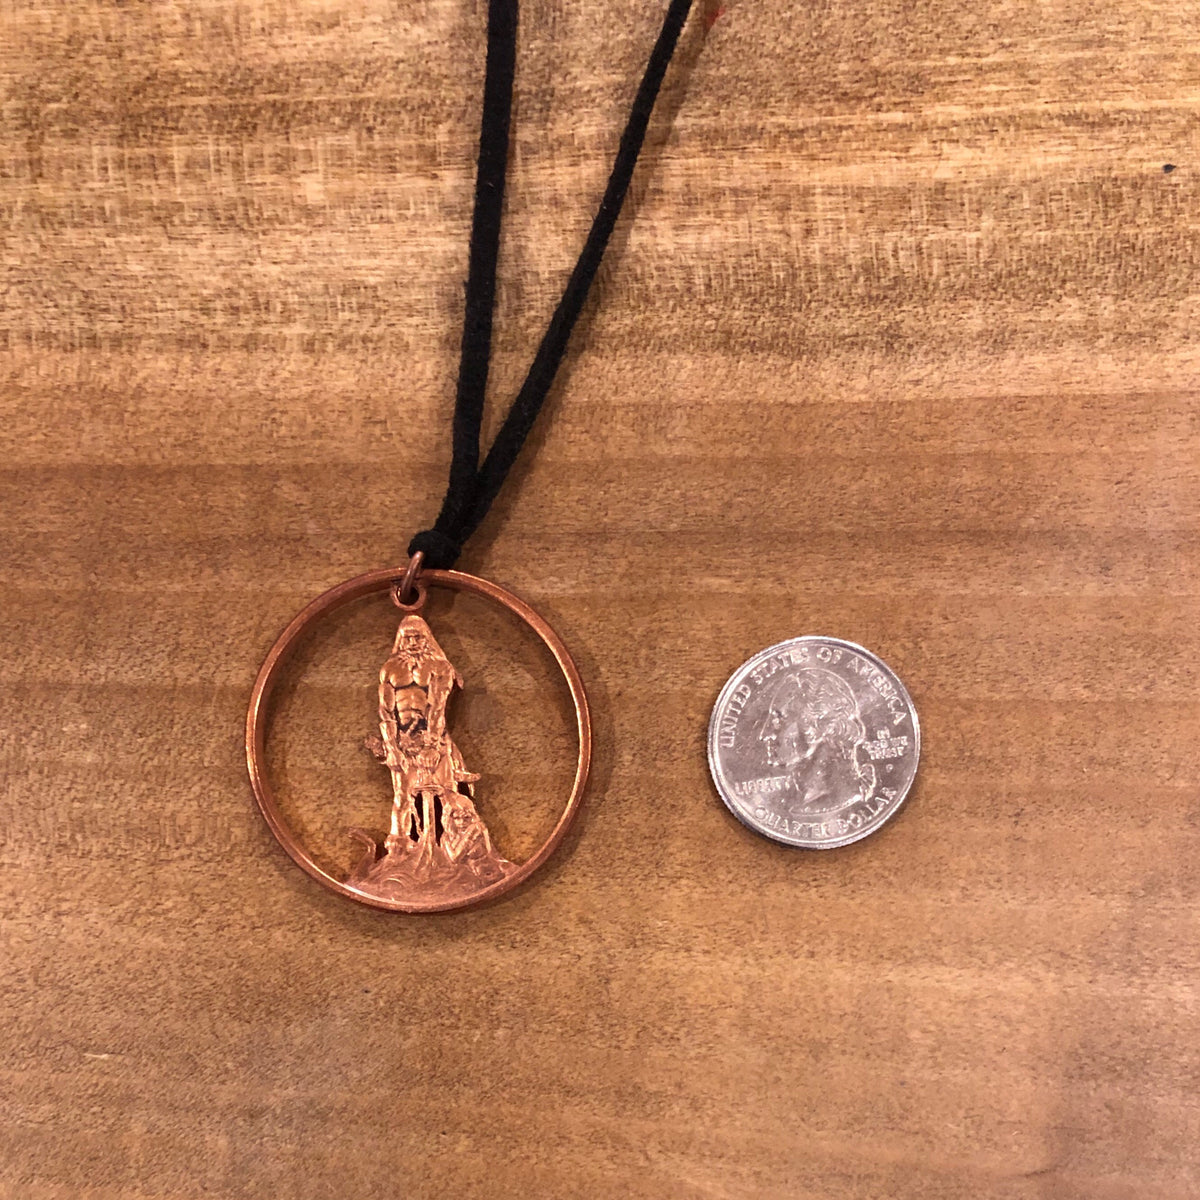 "A TSY Hand-Cut + Frank Frazetta Conan The Barbarian"" Pendant Necklace, Jewelry ~FINAL SALE!"